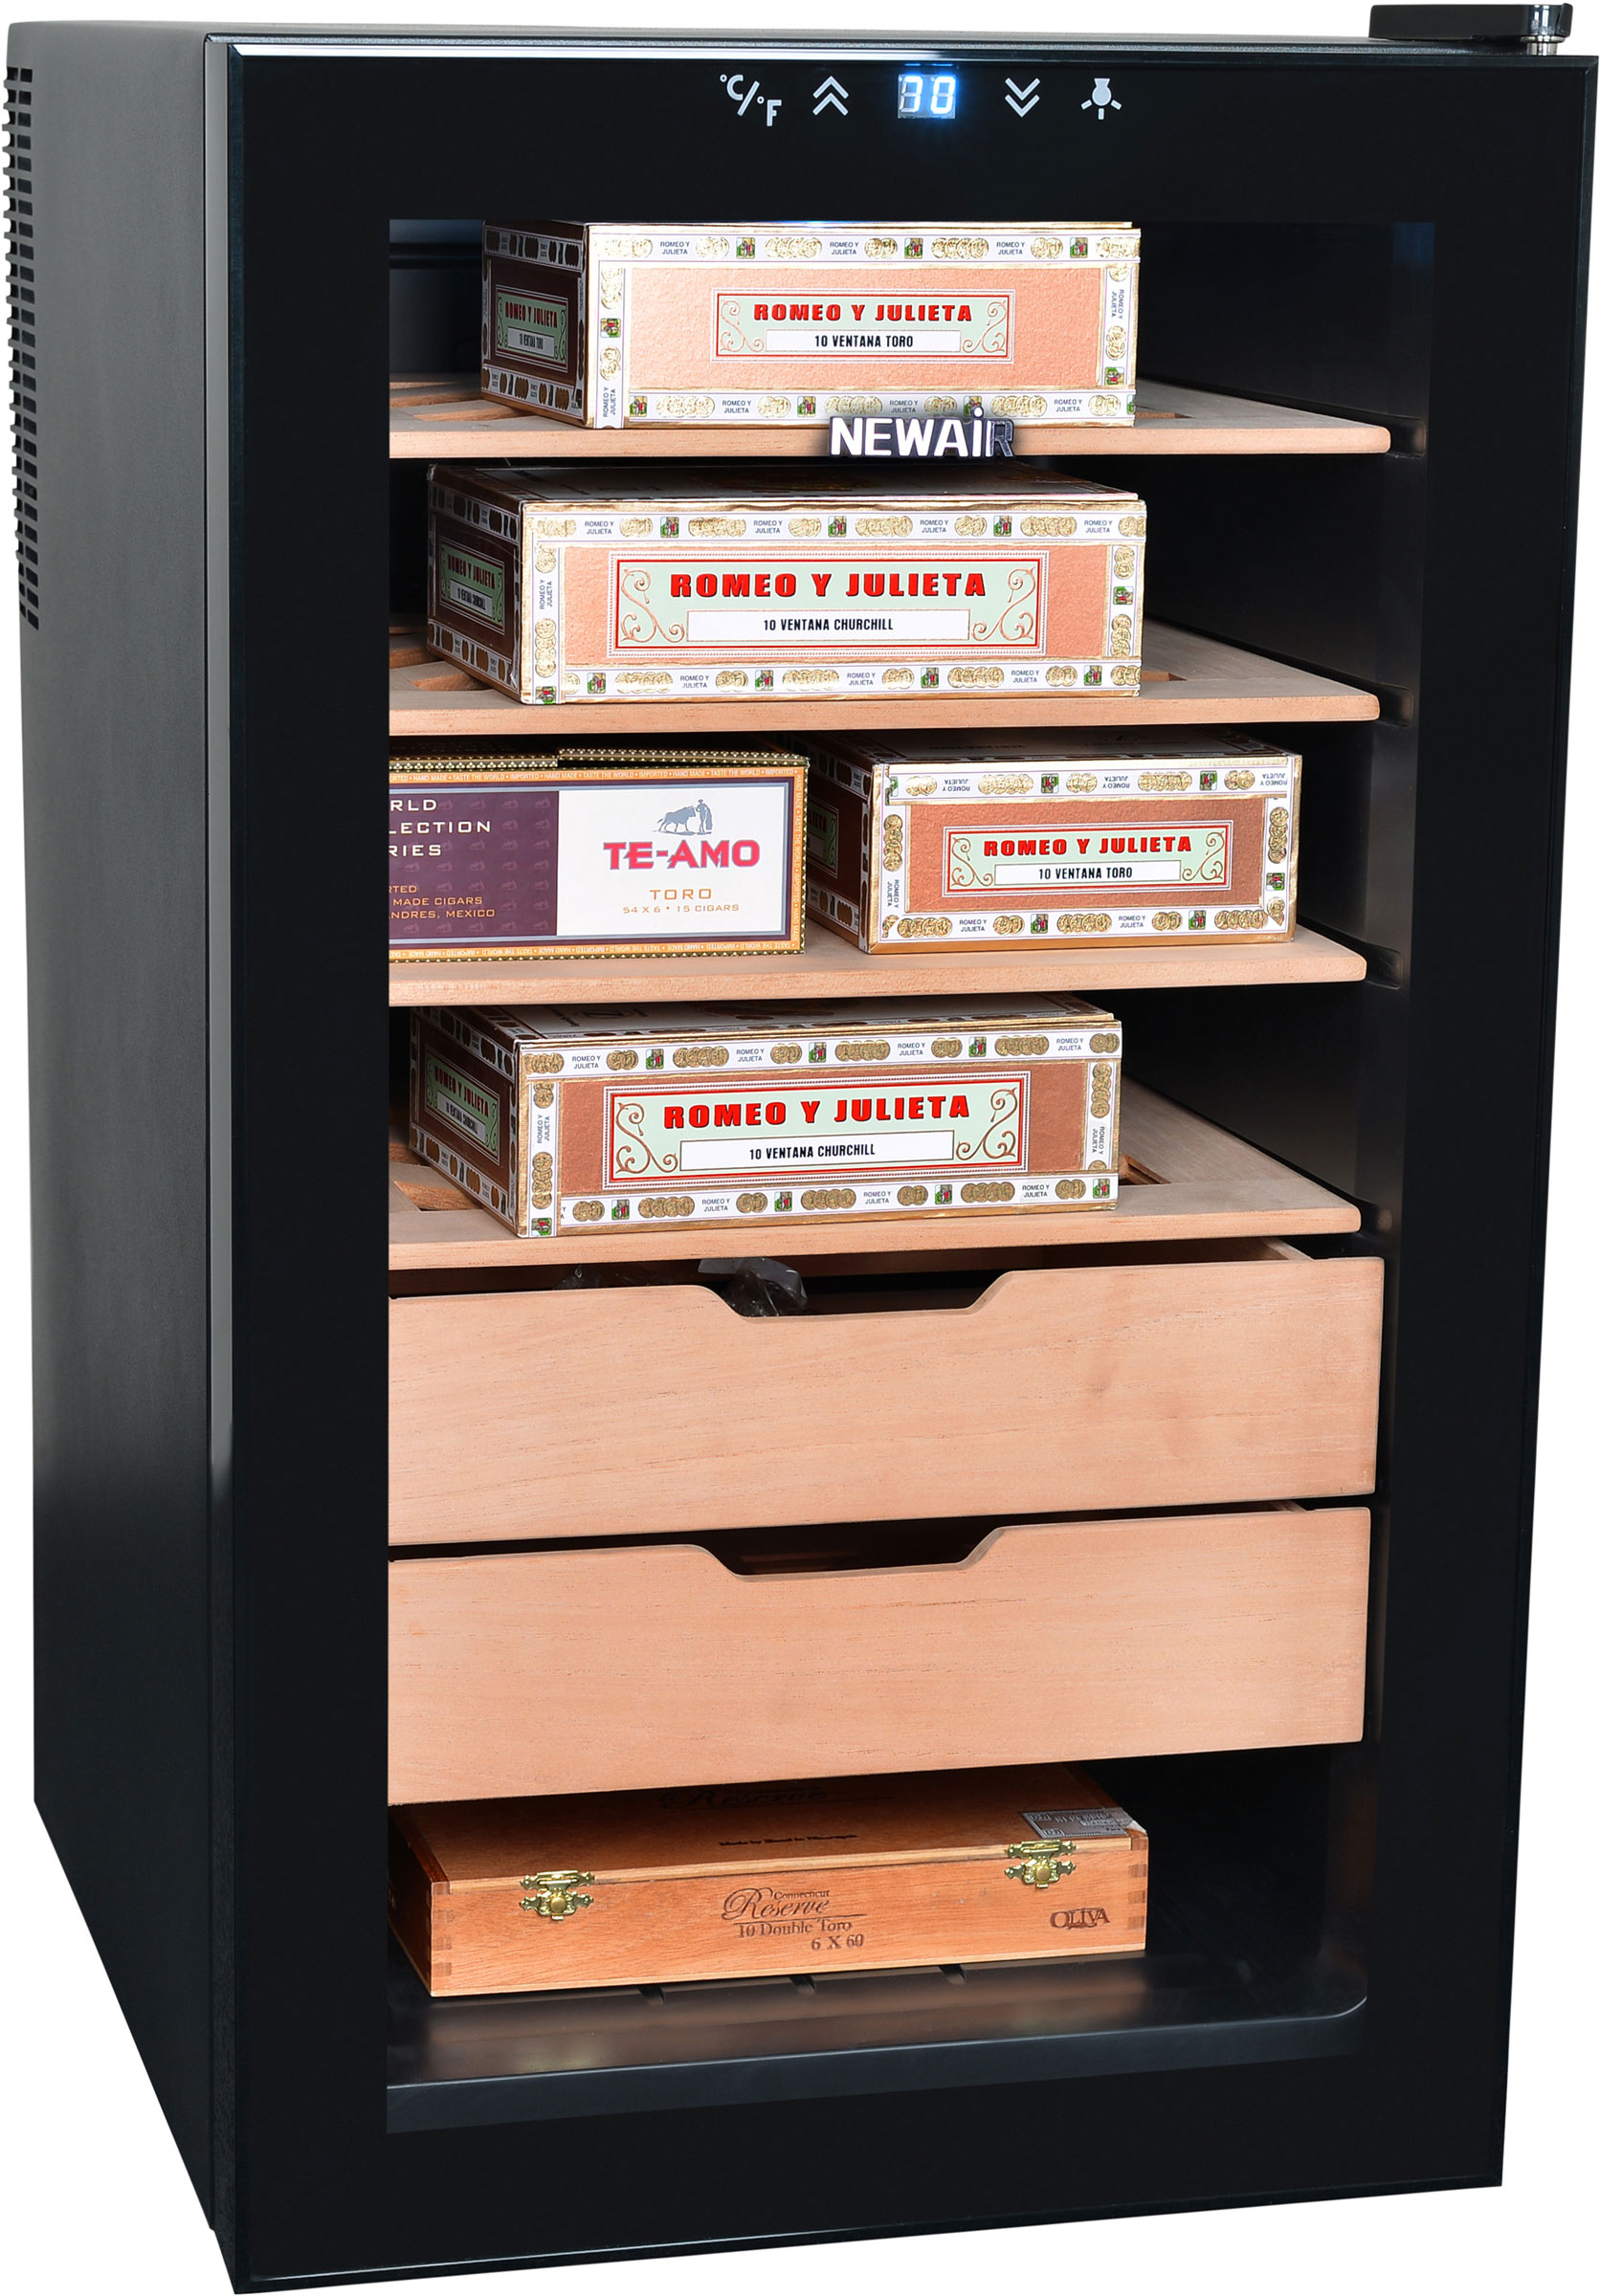 The NewAir CC-280E Humidor Thermoelectric Cigar Cooler